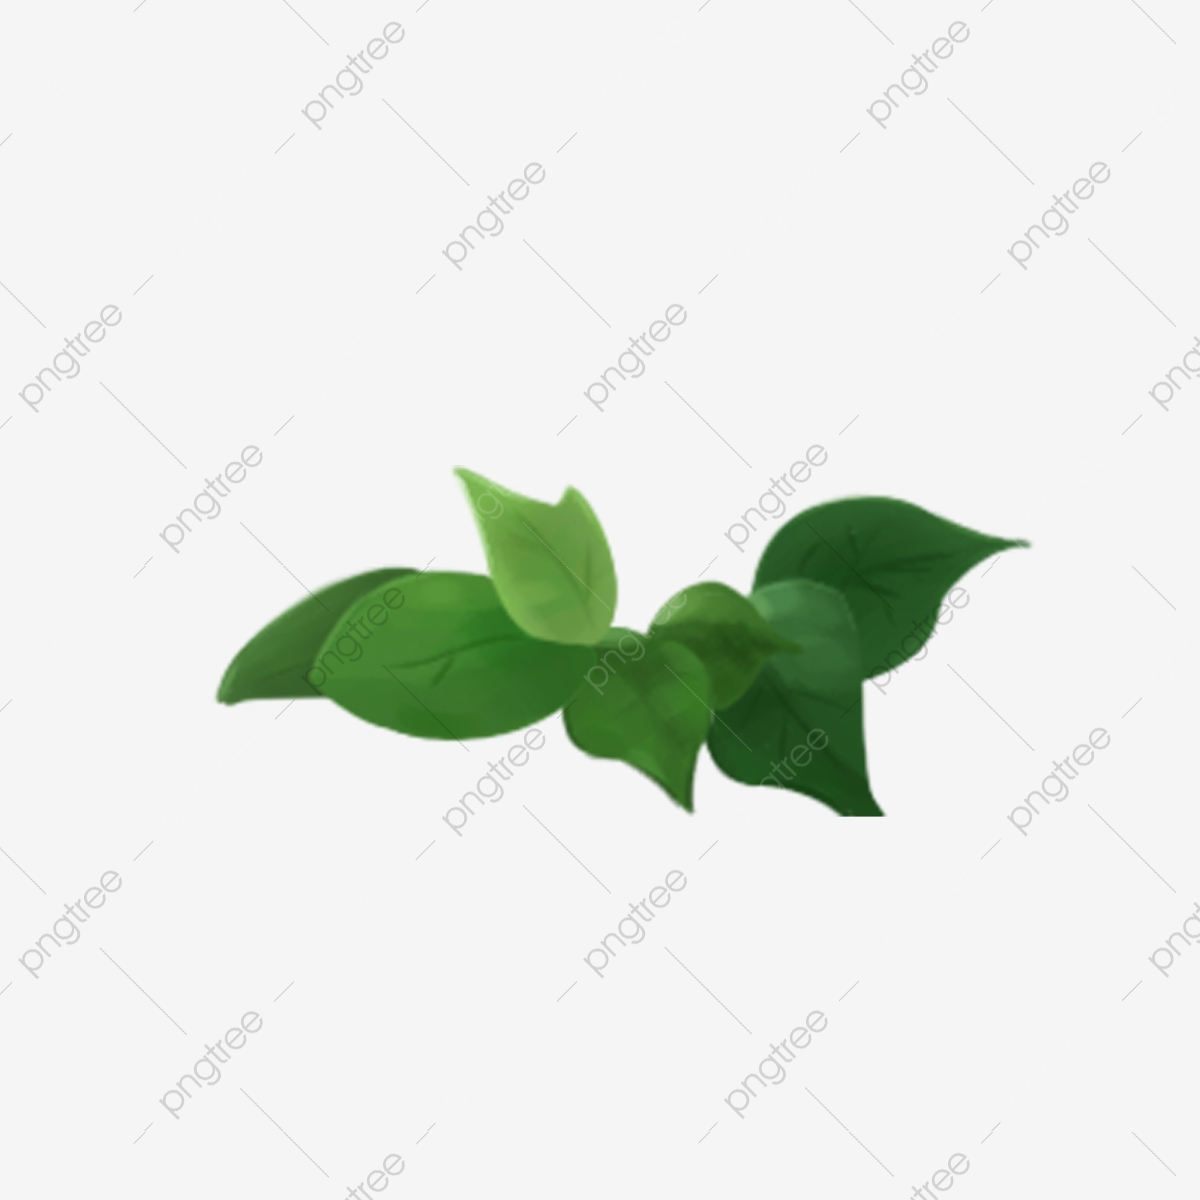 Cartoon Green Tea Leaf Download Cartoon Tea Leaves Green Leaves Cartoon Green Leaves Png Transparent Clipart Image And Psd File For Free Download